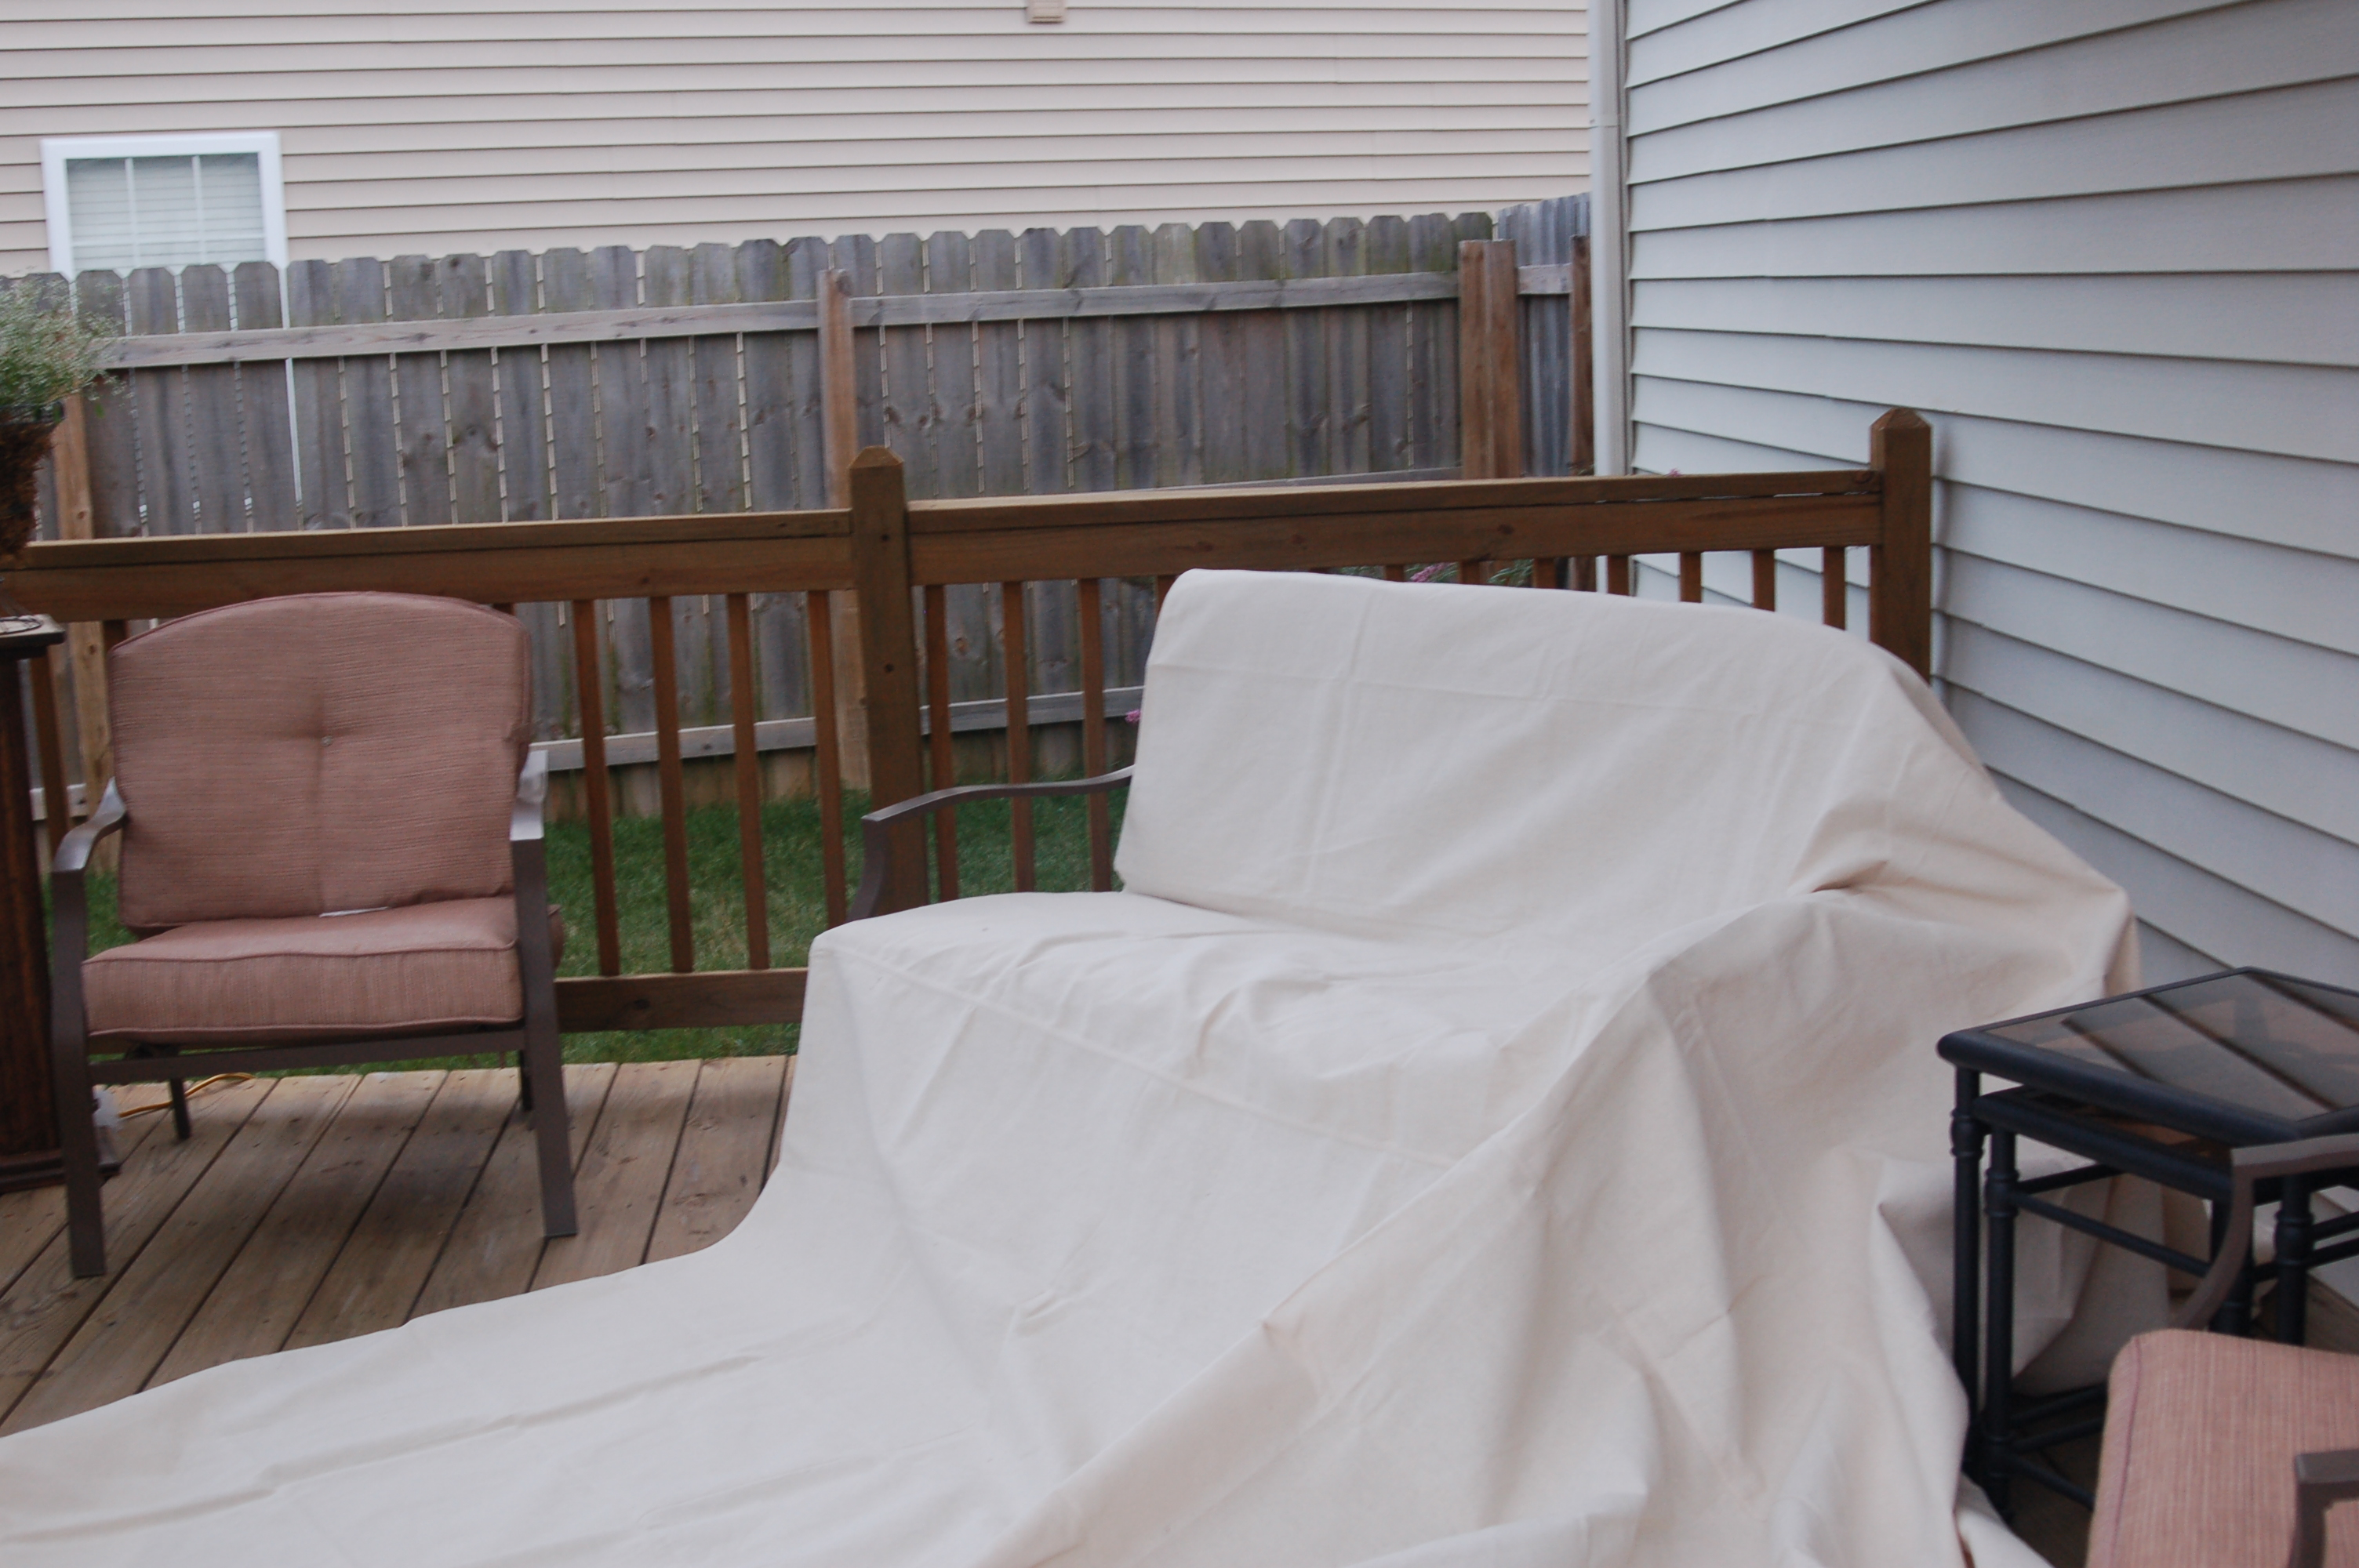 Outdoor Furniture Slip Cover